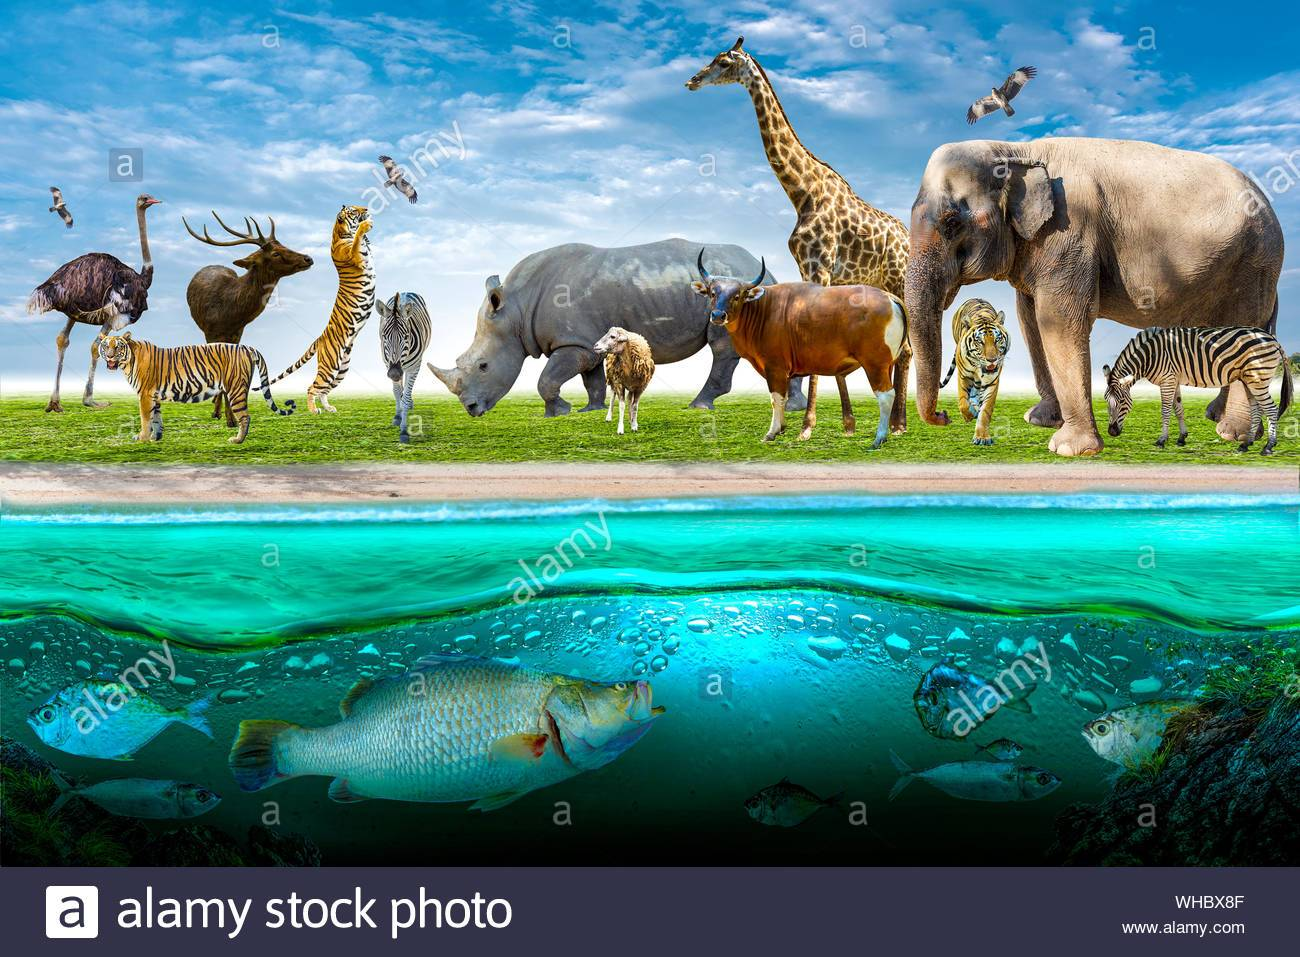 wildlife conservation day wild animals to the home or wildlife protection WHBX8F A RESEARCH ON WILDLIFE PROTECTION LAWS – CRIMES AGAINST INNOCENCE